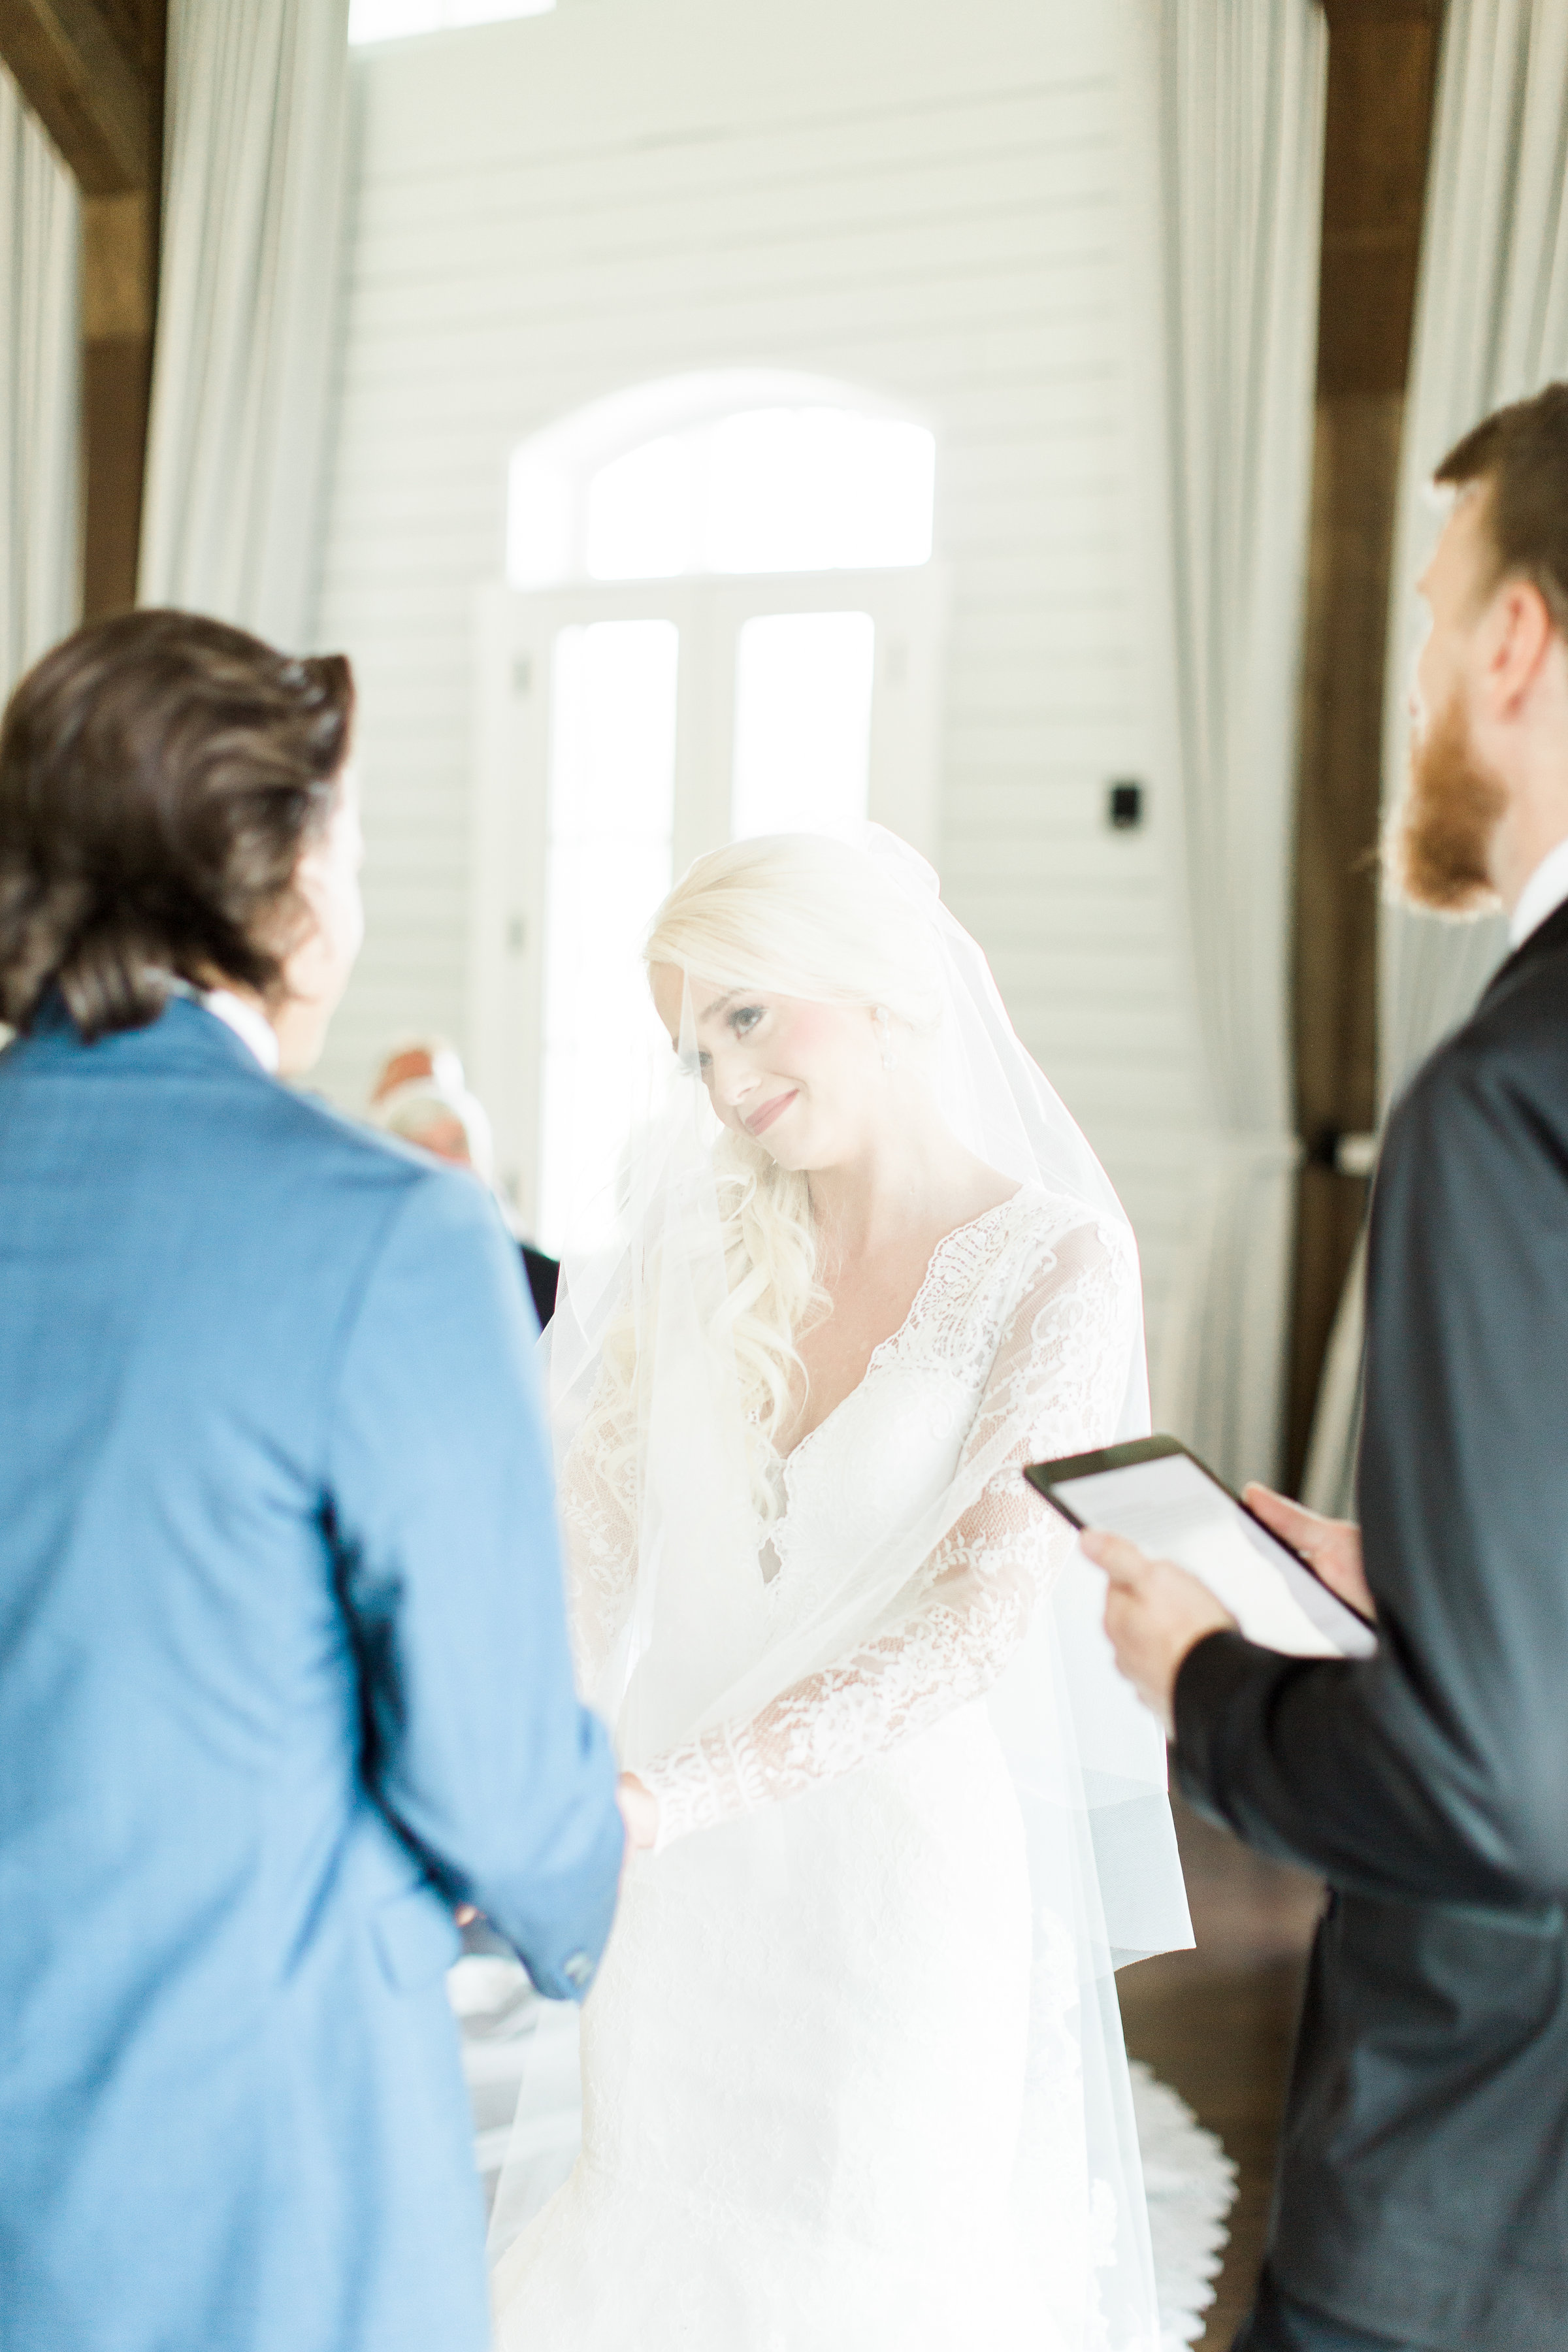 Carterweddingceremony-43.jpg